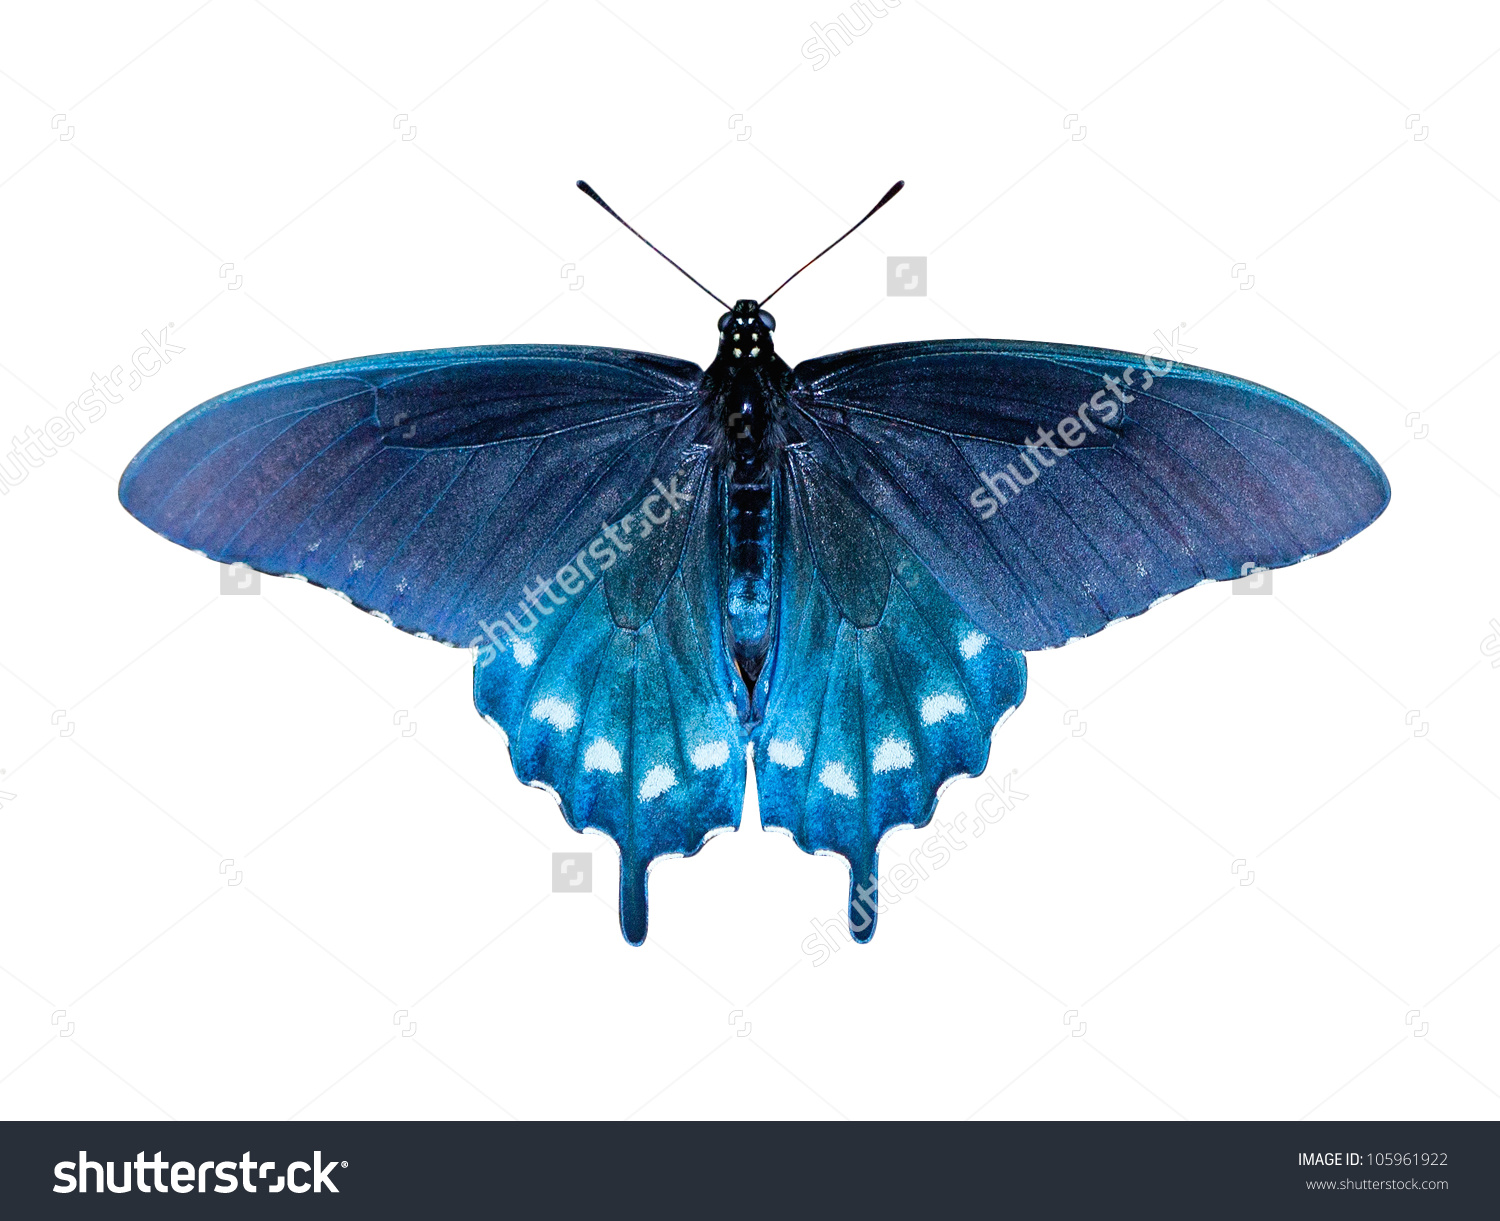 Pipevine Swallowtail Butterfly Battus Philenor Stock Photo.